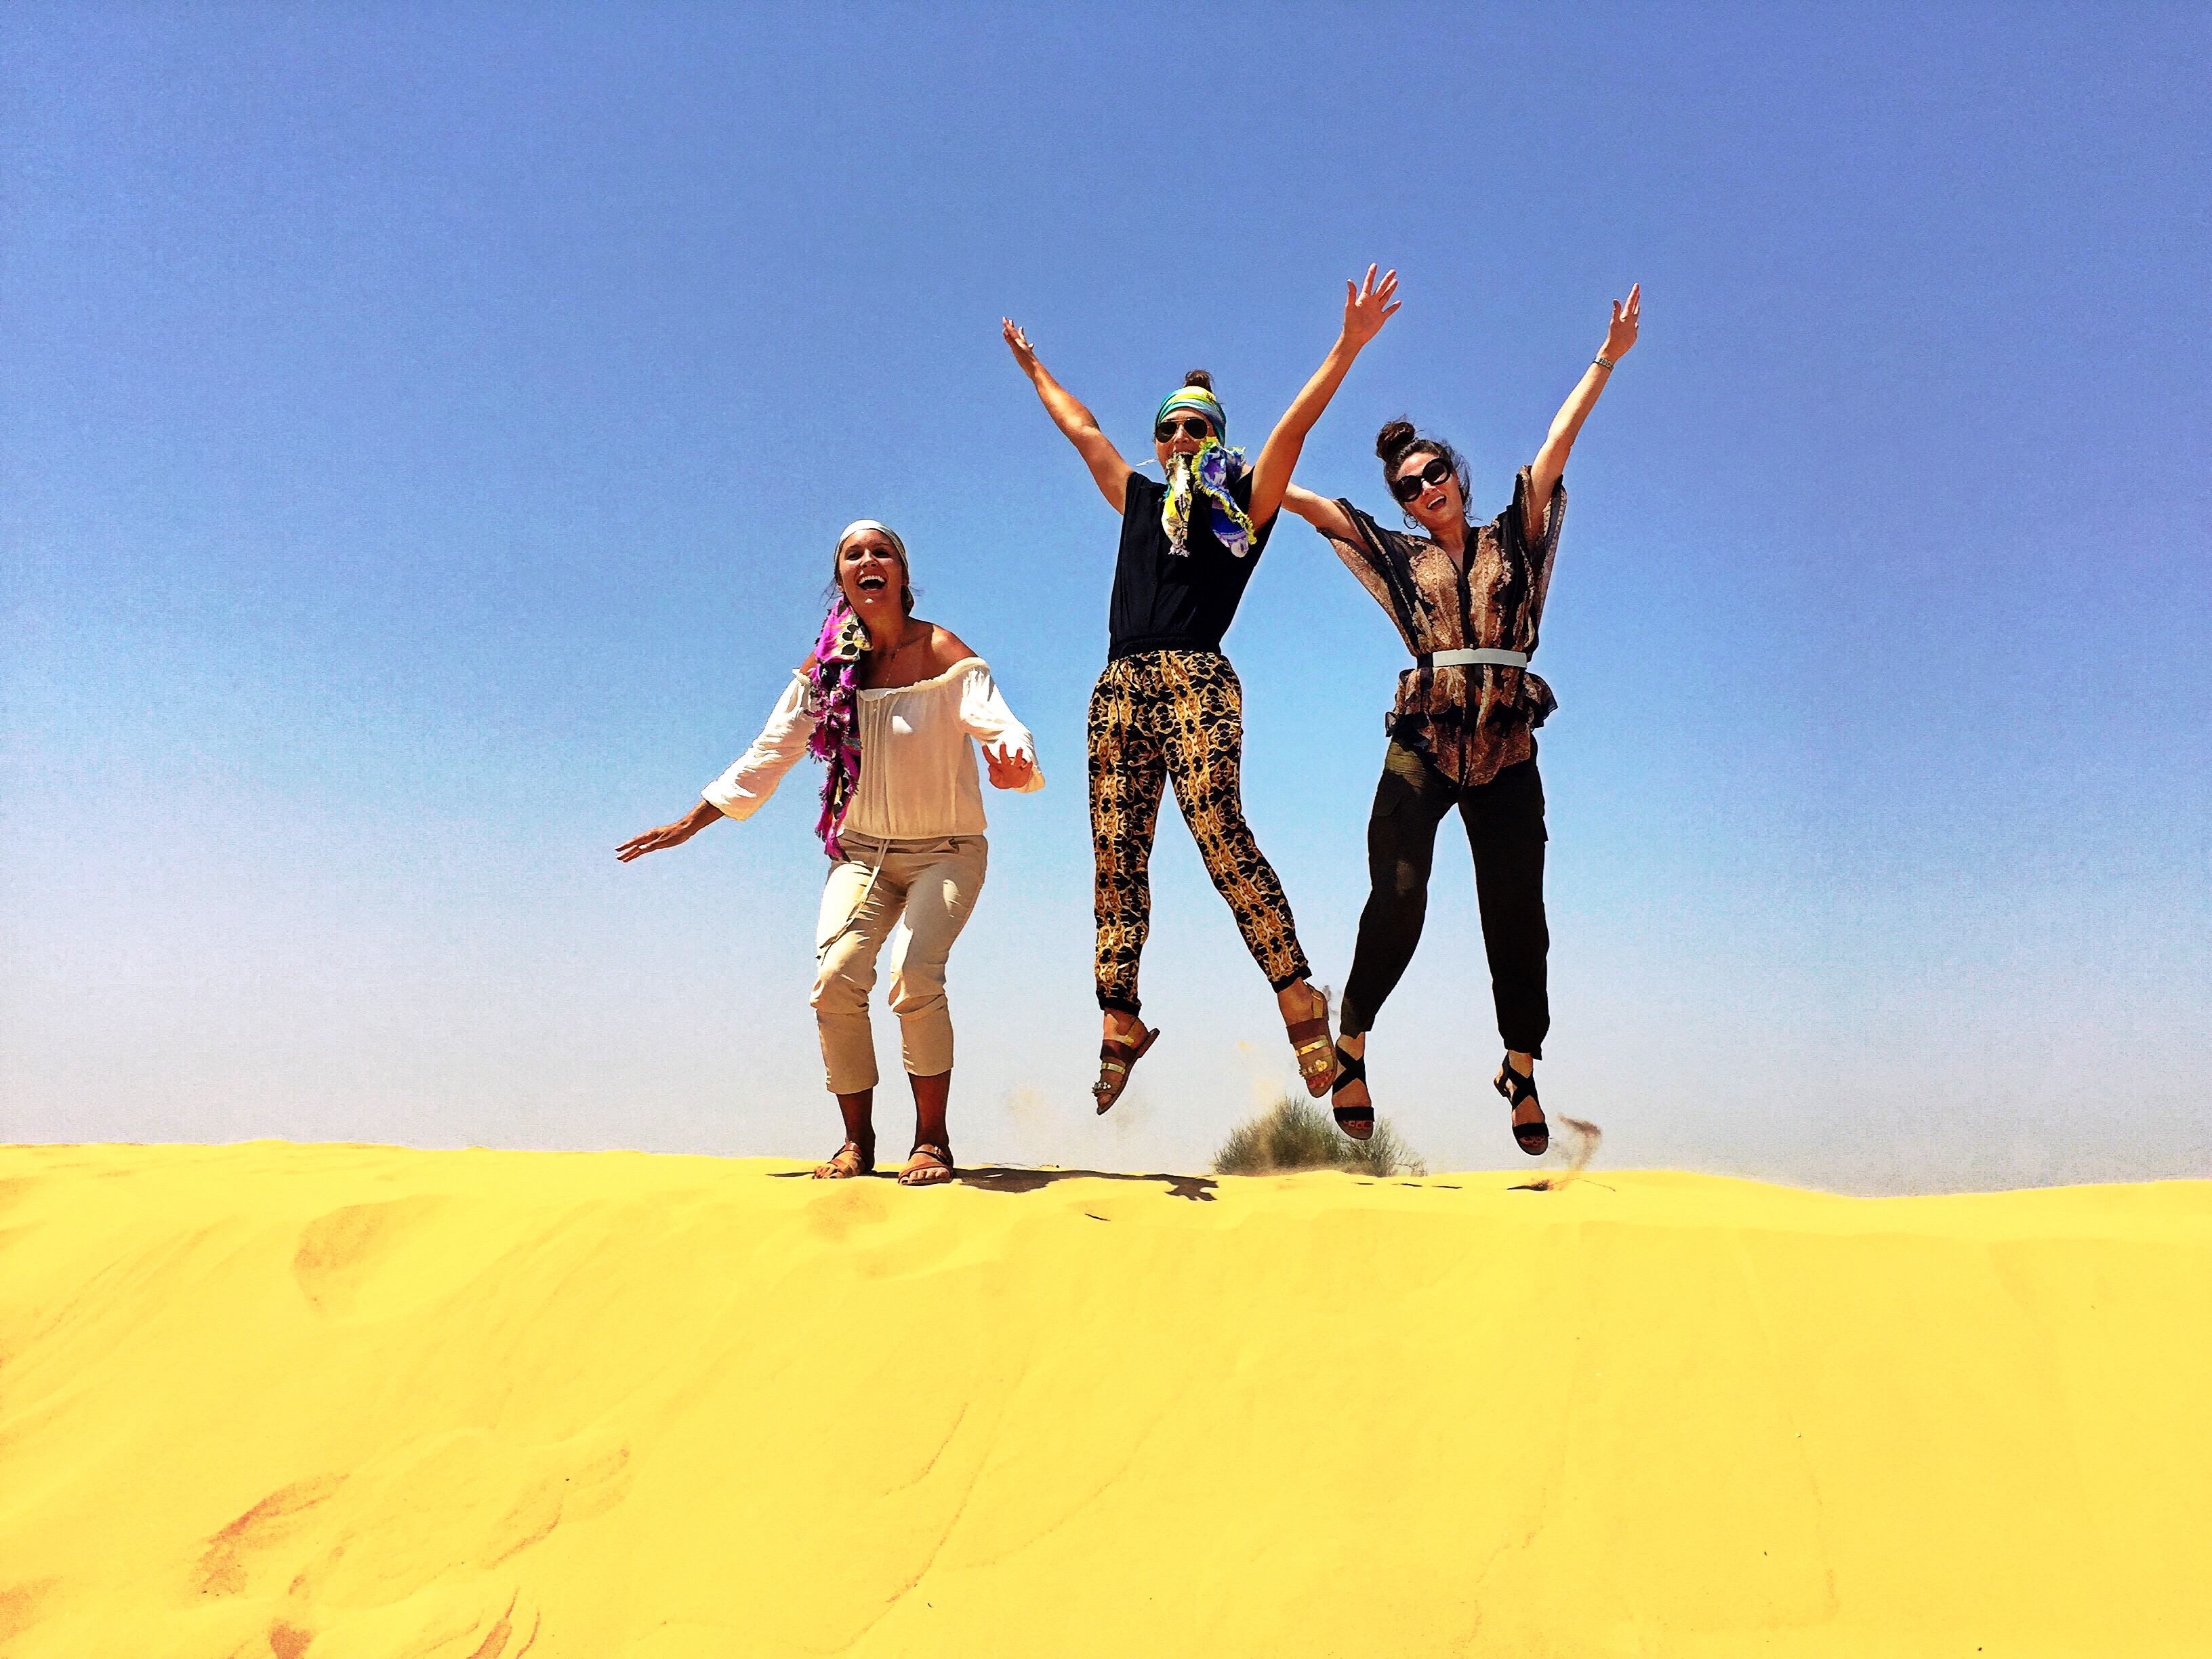 jumping-in-the-sand-dunes-dubai